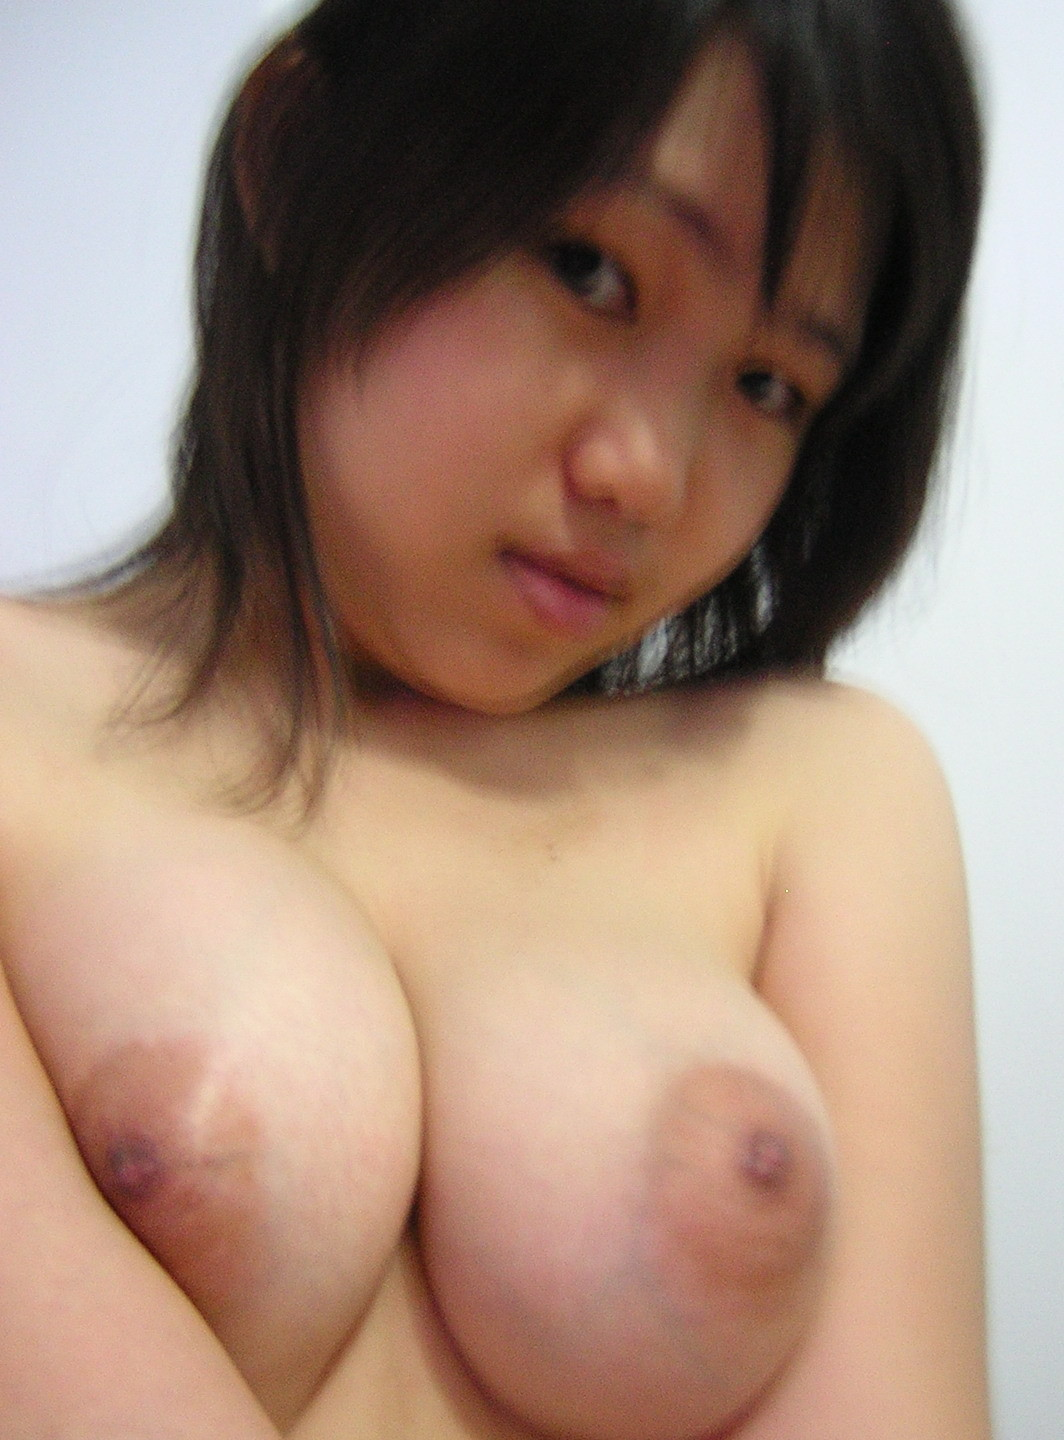 Cute Indonesian girl's nude  photos leaked porn nipples lovely